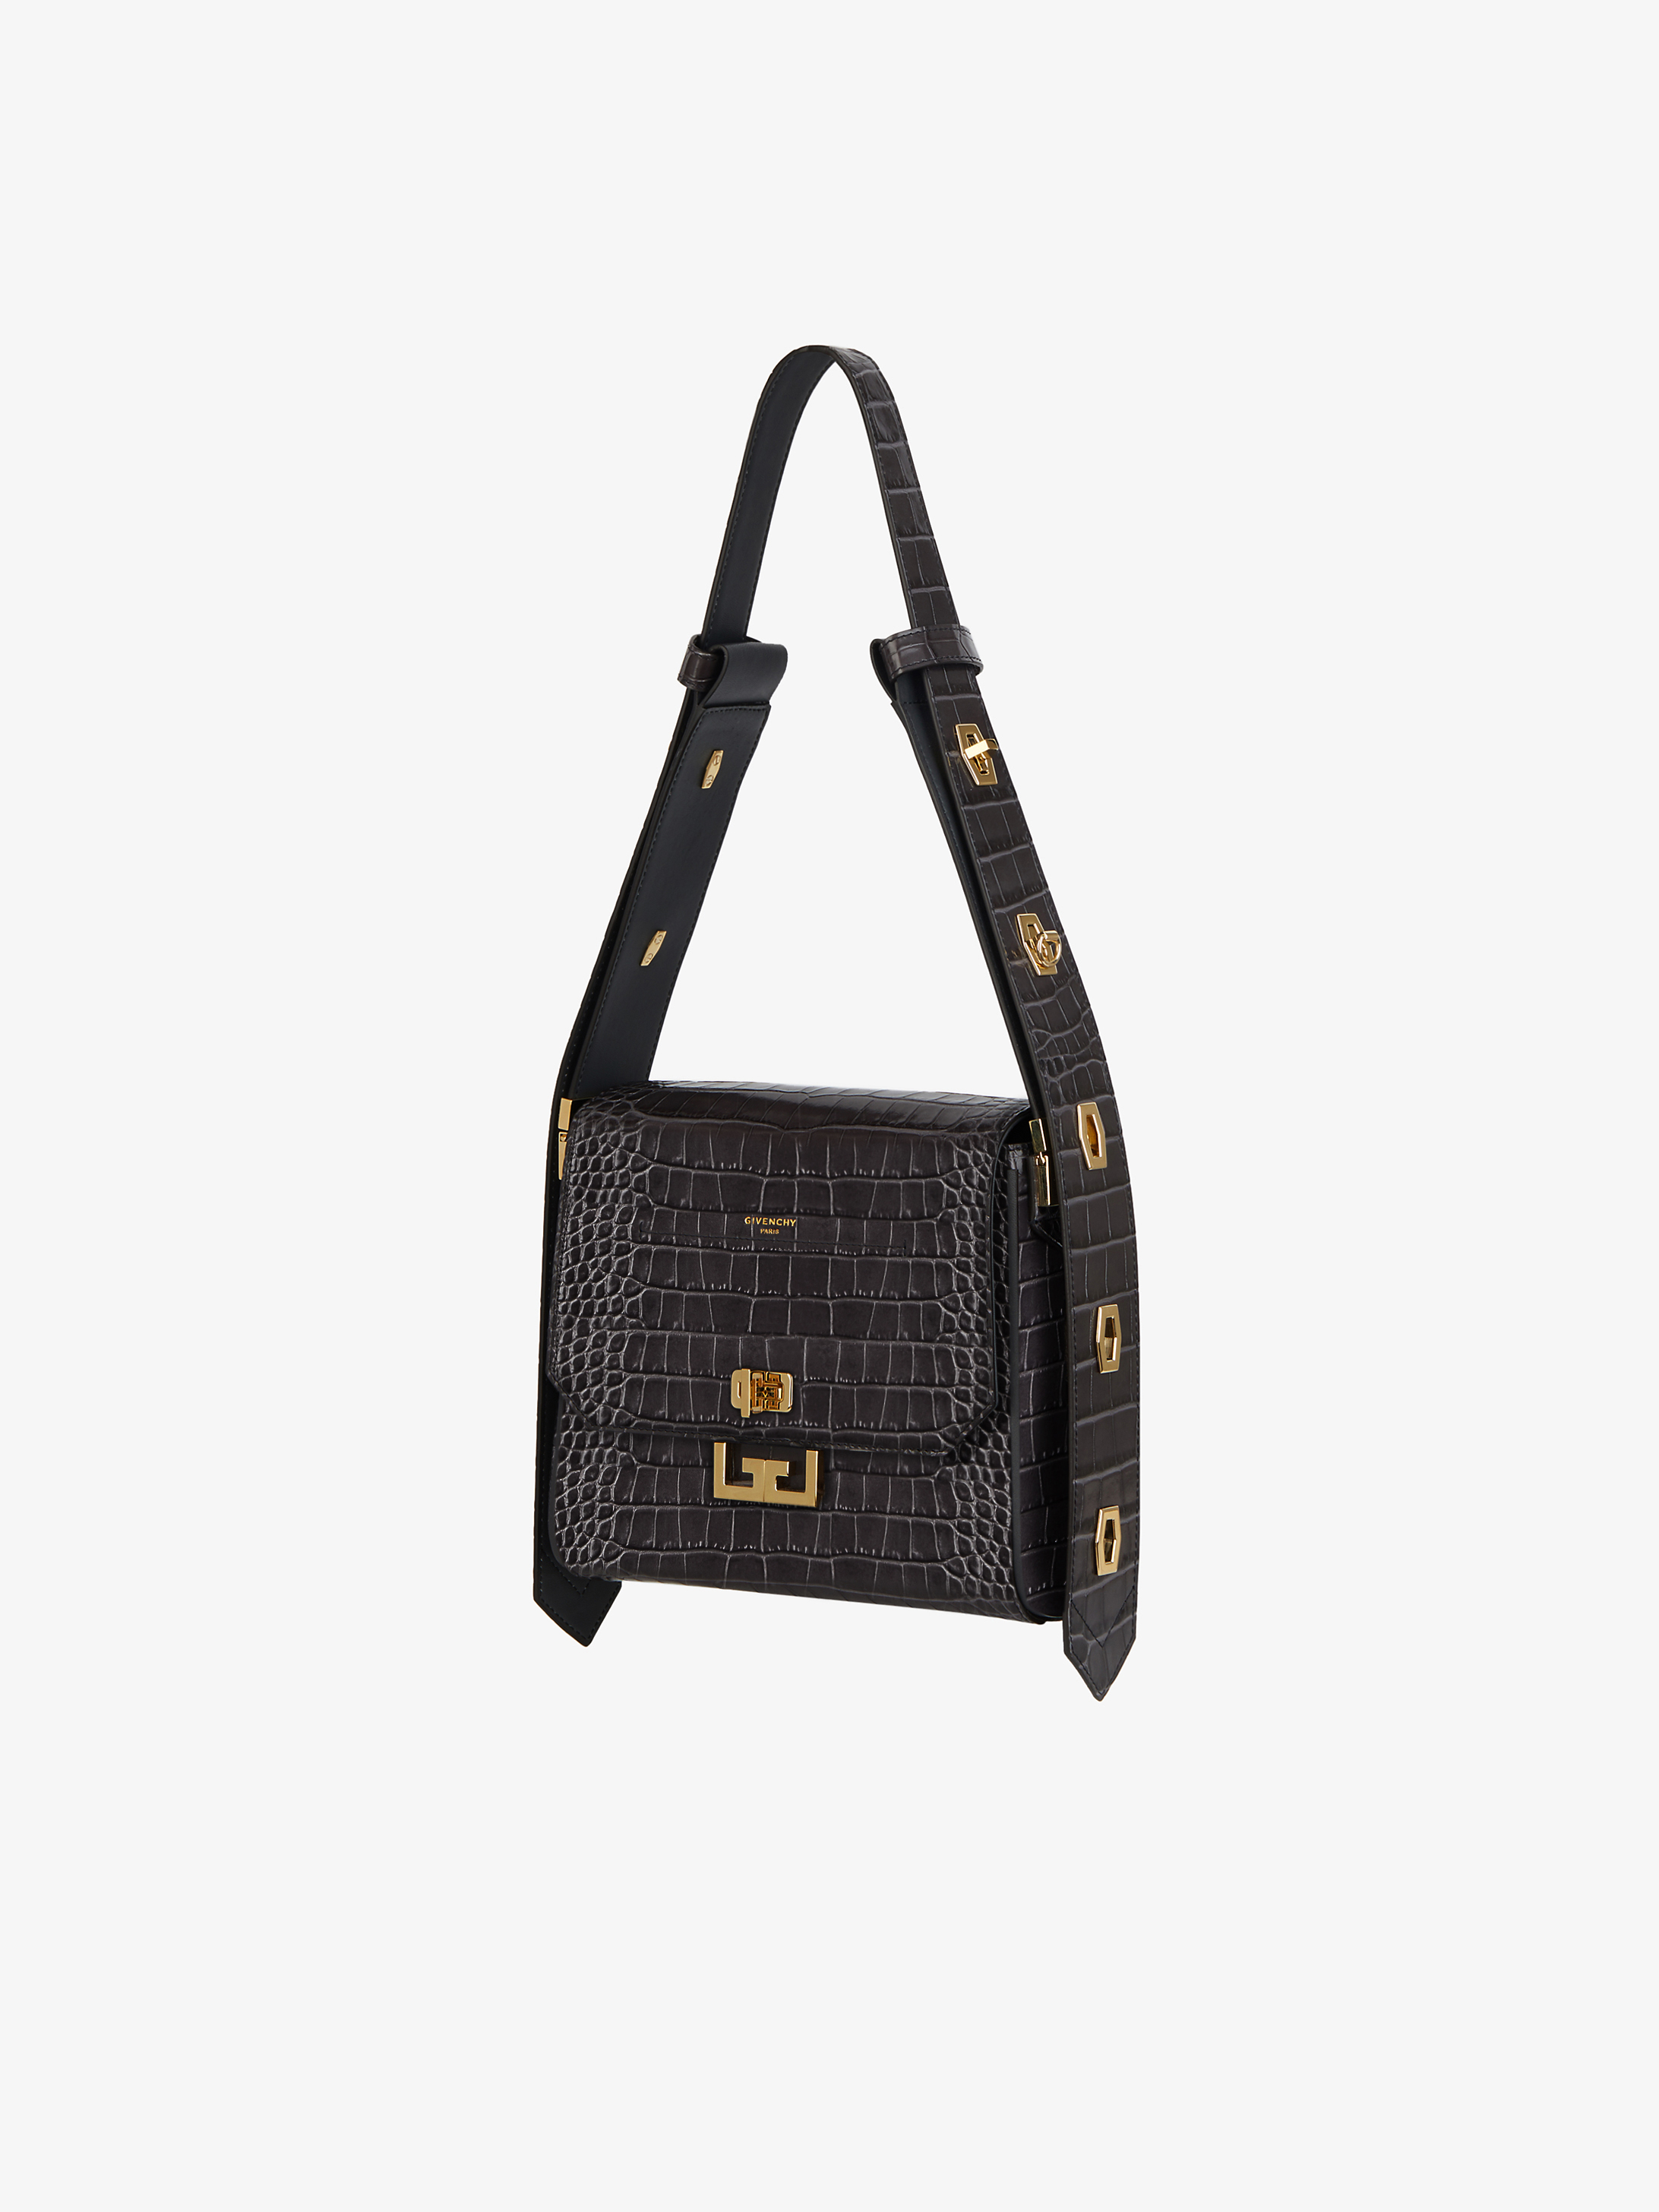 Medium Eden bag in crocodile effect leather